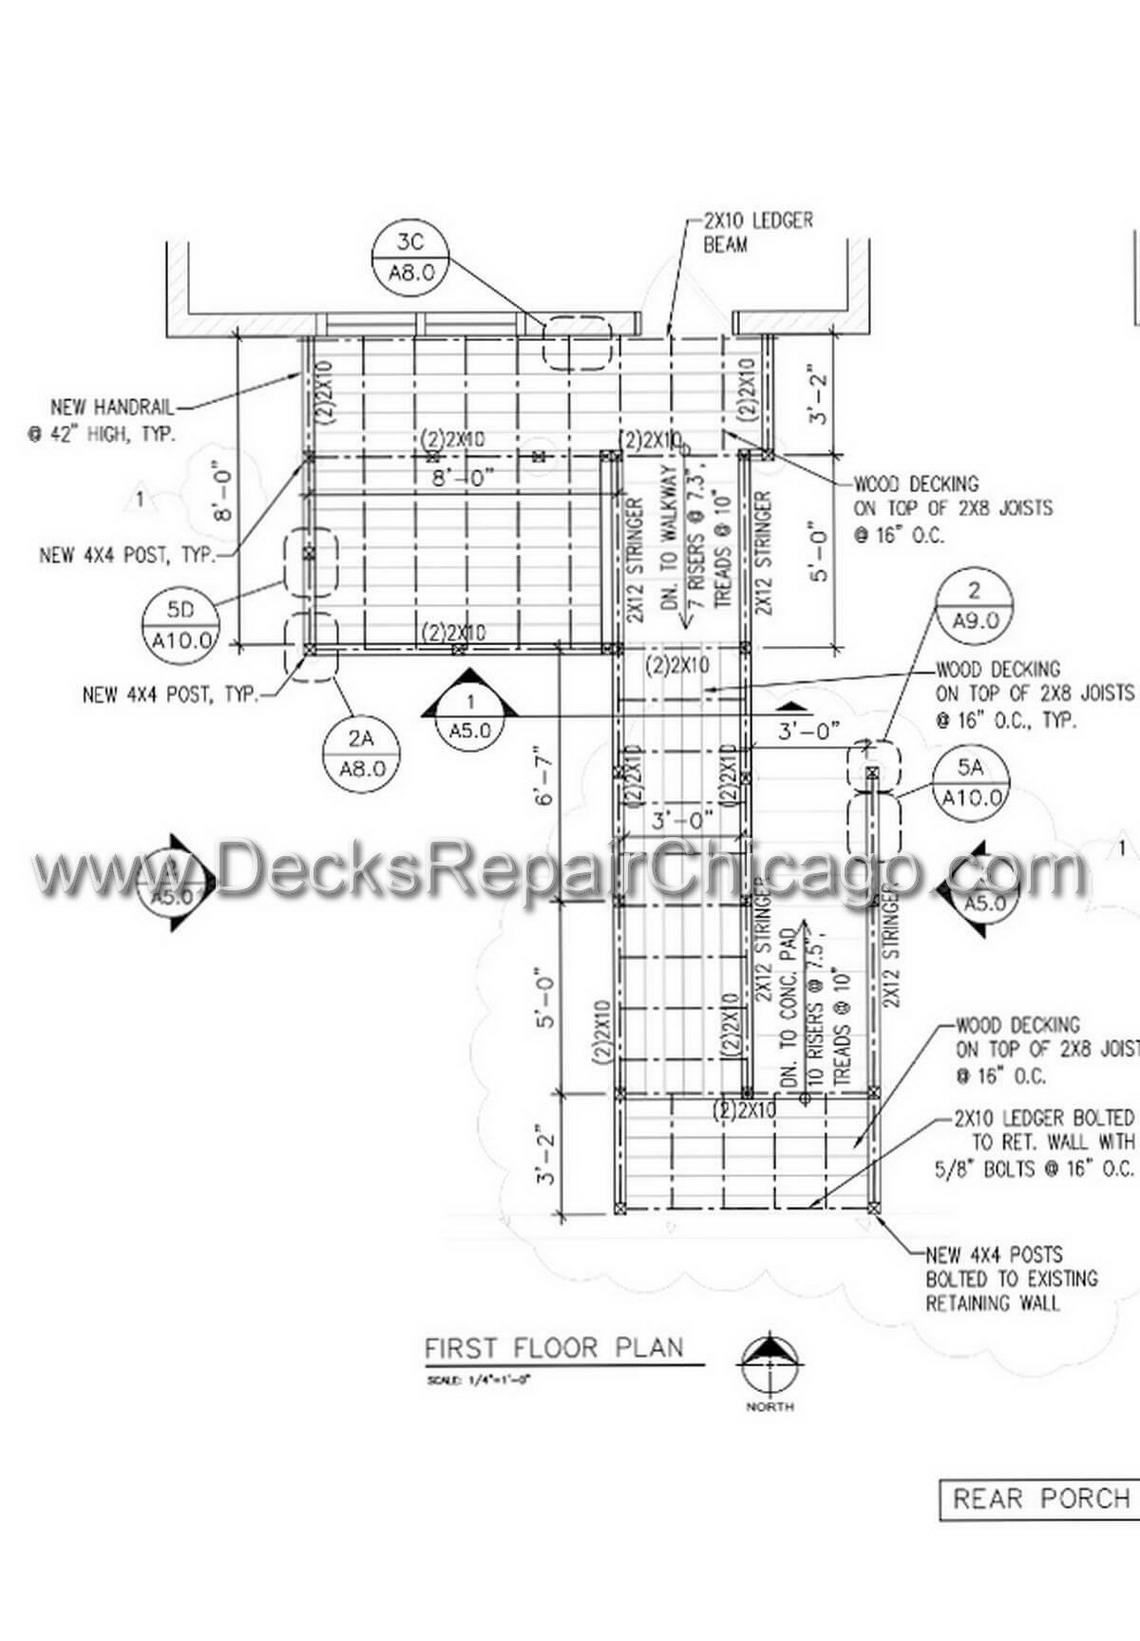 Decks Repair Chicago - Wood Metal Decks Custom Designs Chicago